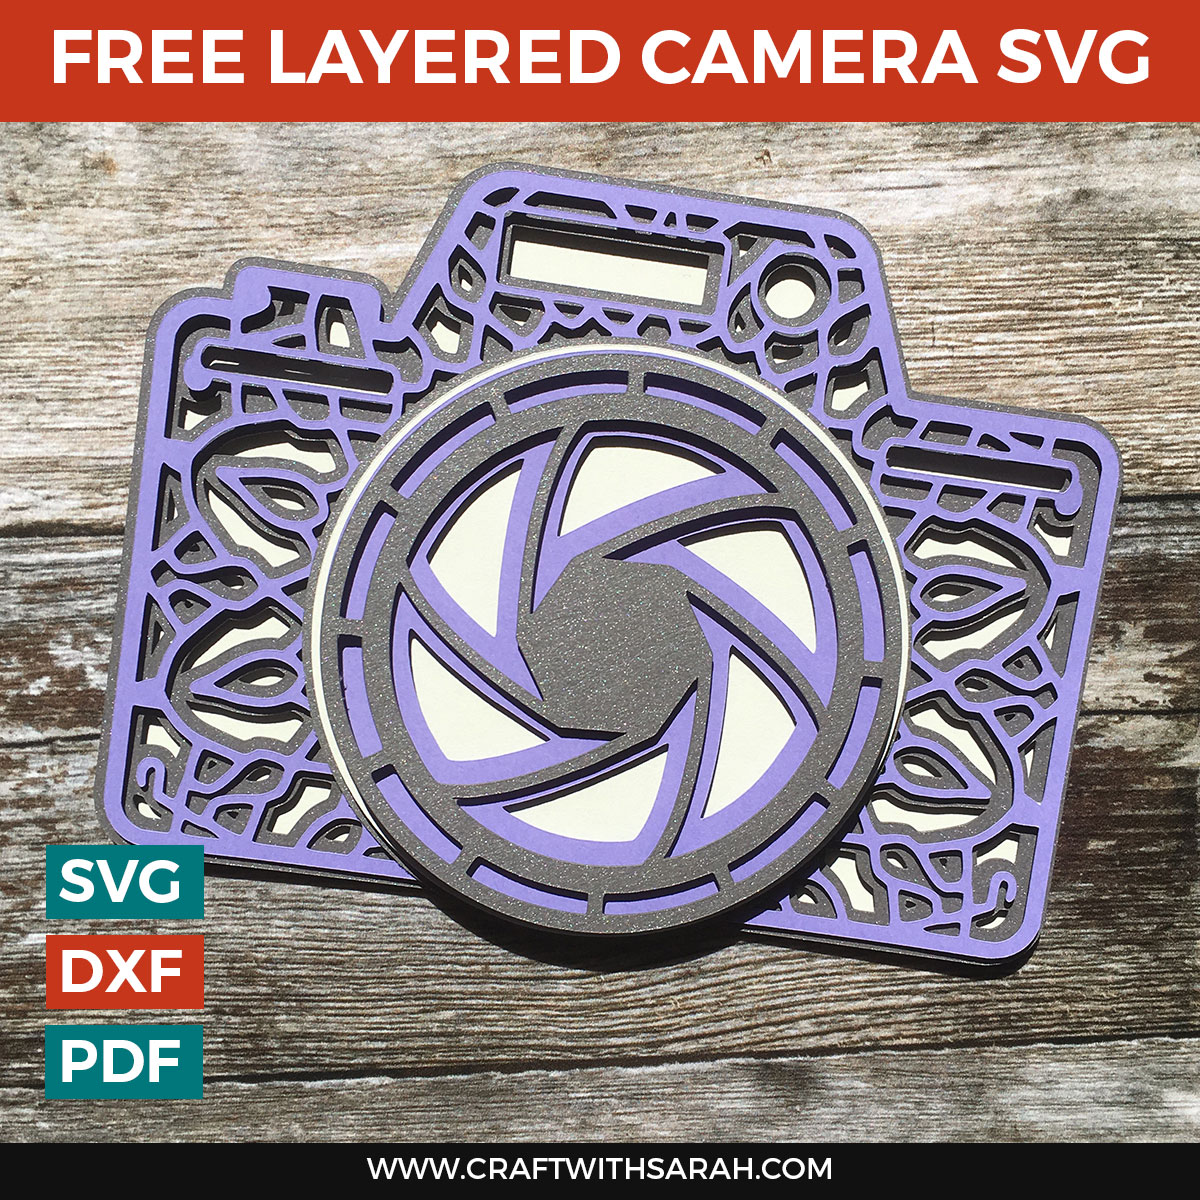 This seven-layer camera SVG is free to download and cut on your Cricut or Silhouette machine. A wonderful gift for any photographer! #svg #cricut